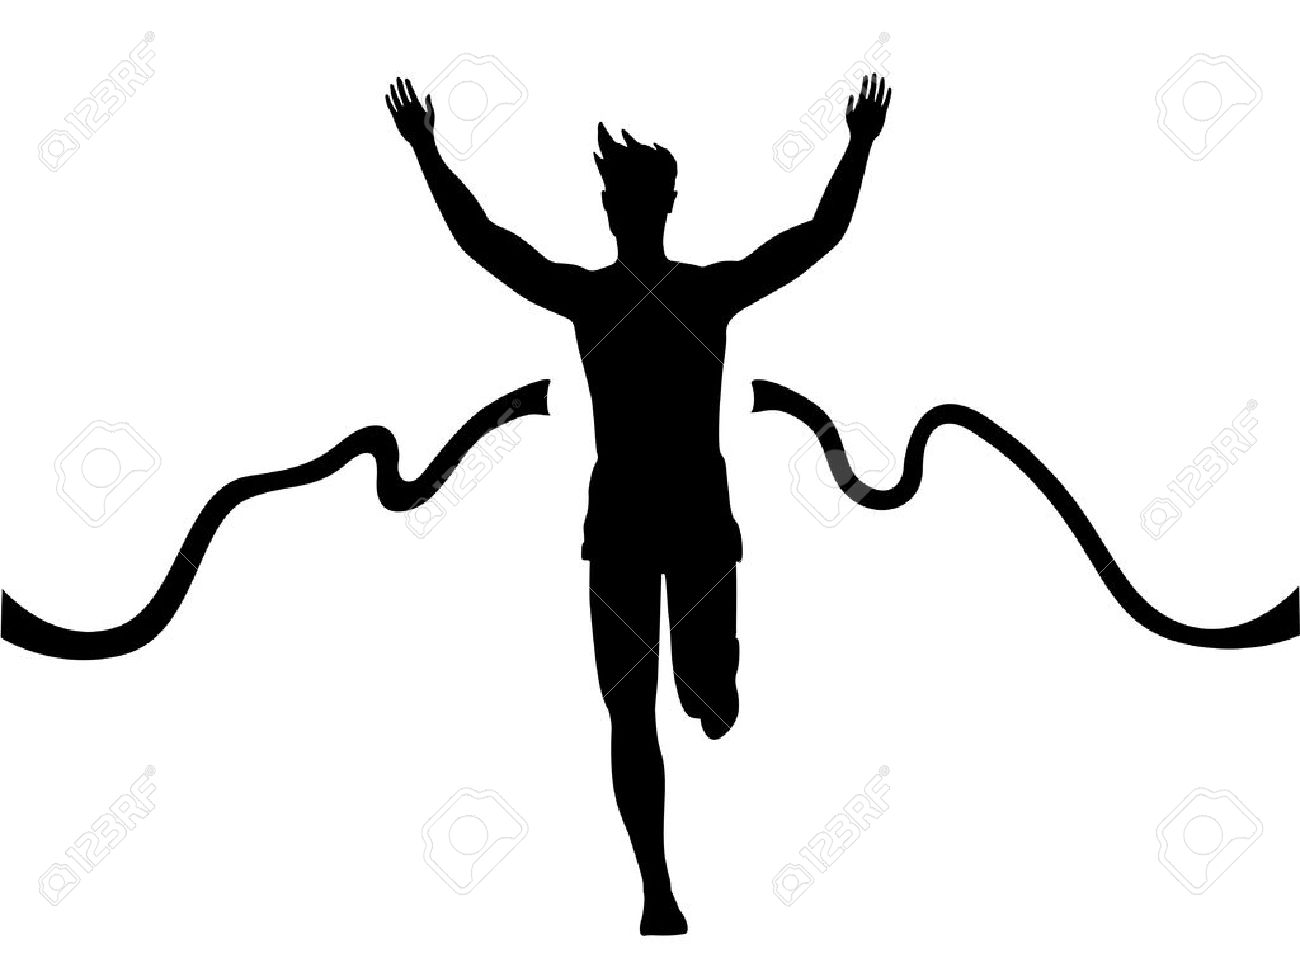 Silhouette Of A Man Running Thru The Finish Line Royalty Free.